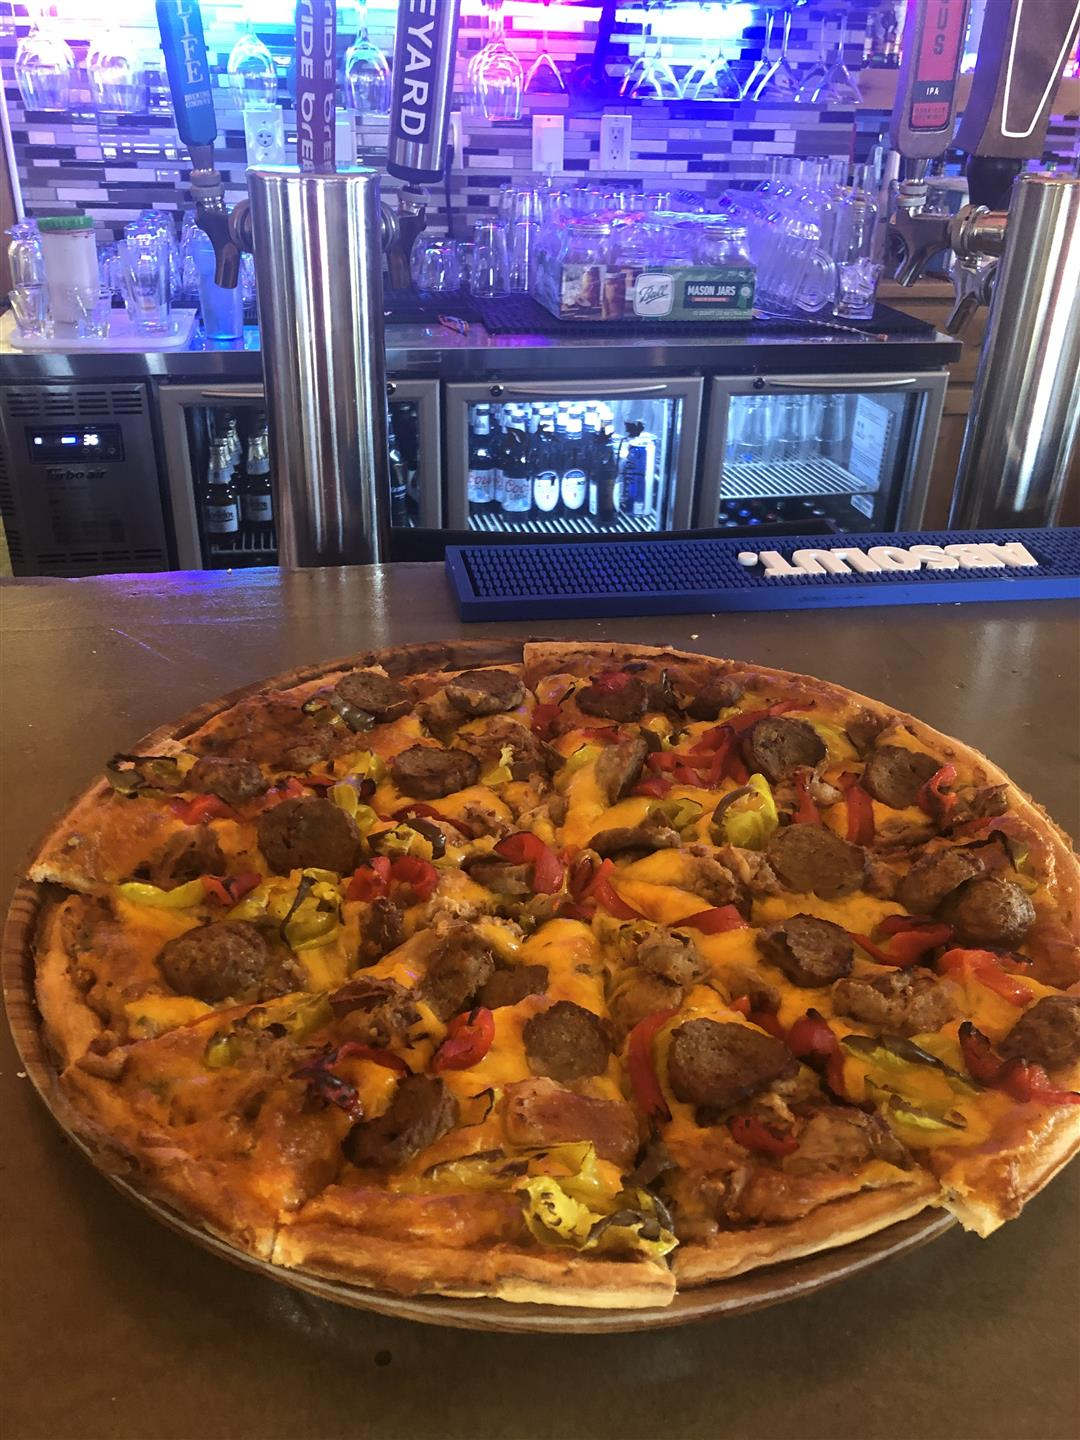 Pizza pie on bar counter